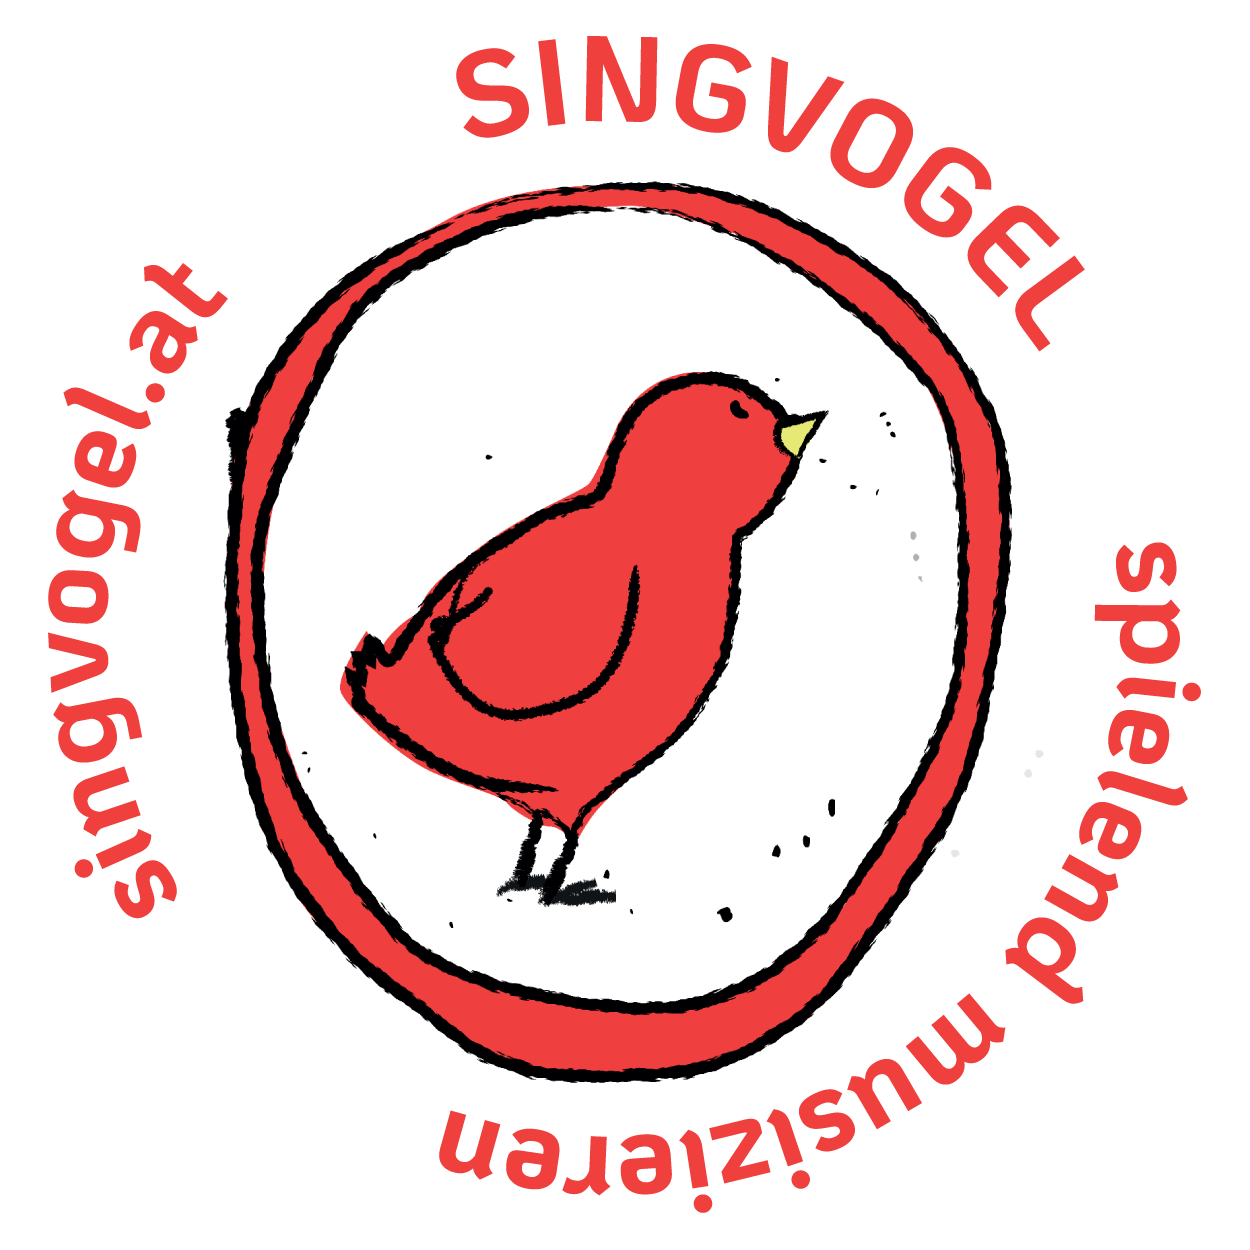 "Video ""Singvogel - spielend musizieren!"""